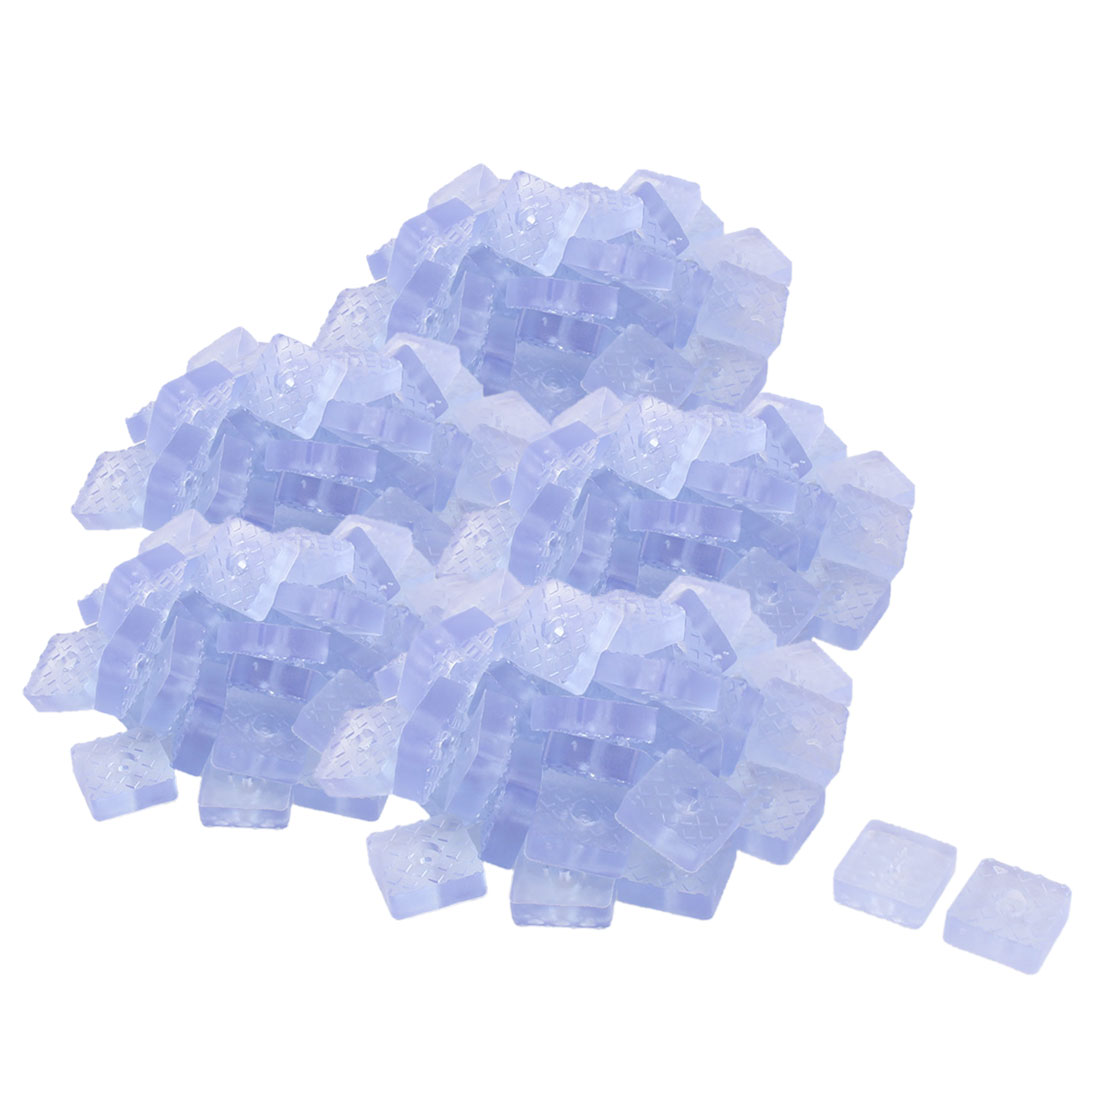 Office Rubber Square Table Furniture Foot Protector Pad Clear Blue 30 x 30mm 200 Pcs